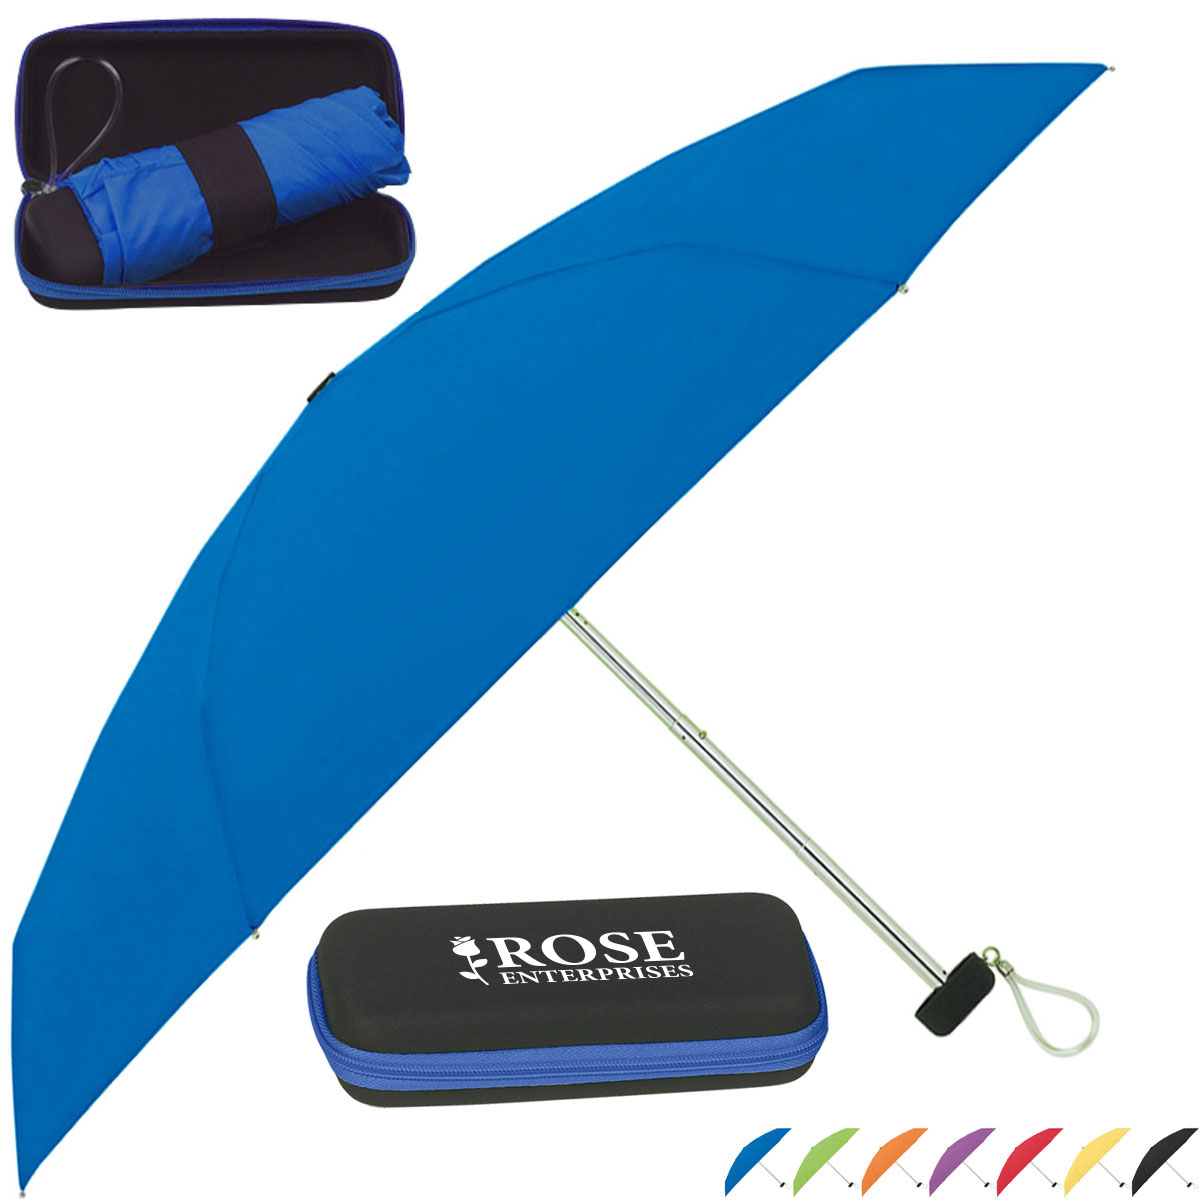 "Folding Travel Umbrella with Case, 37"" Arc"